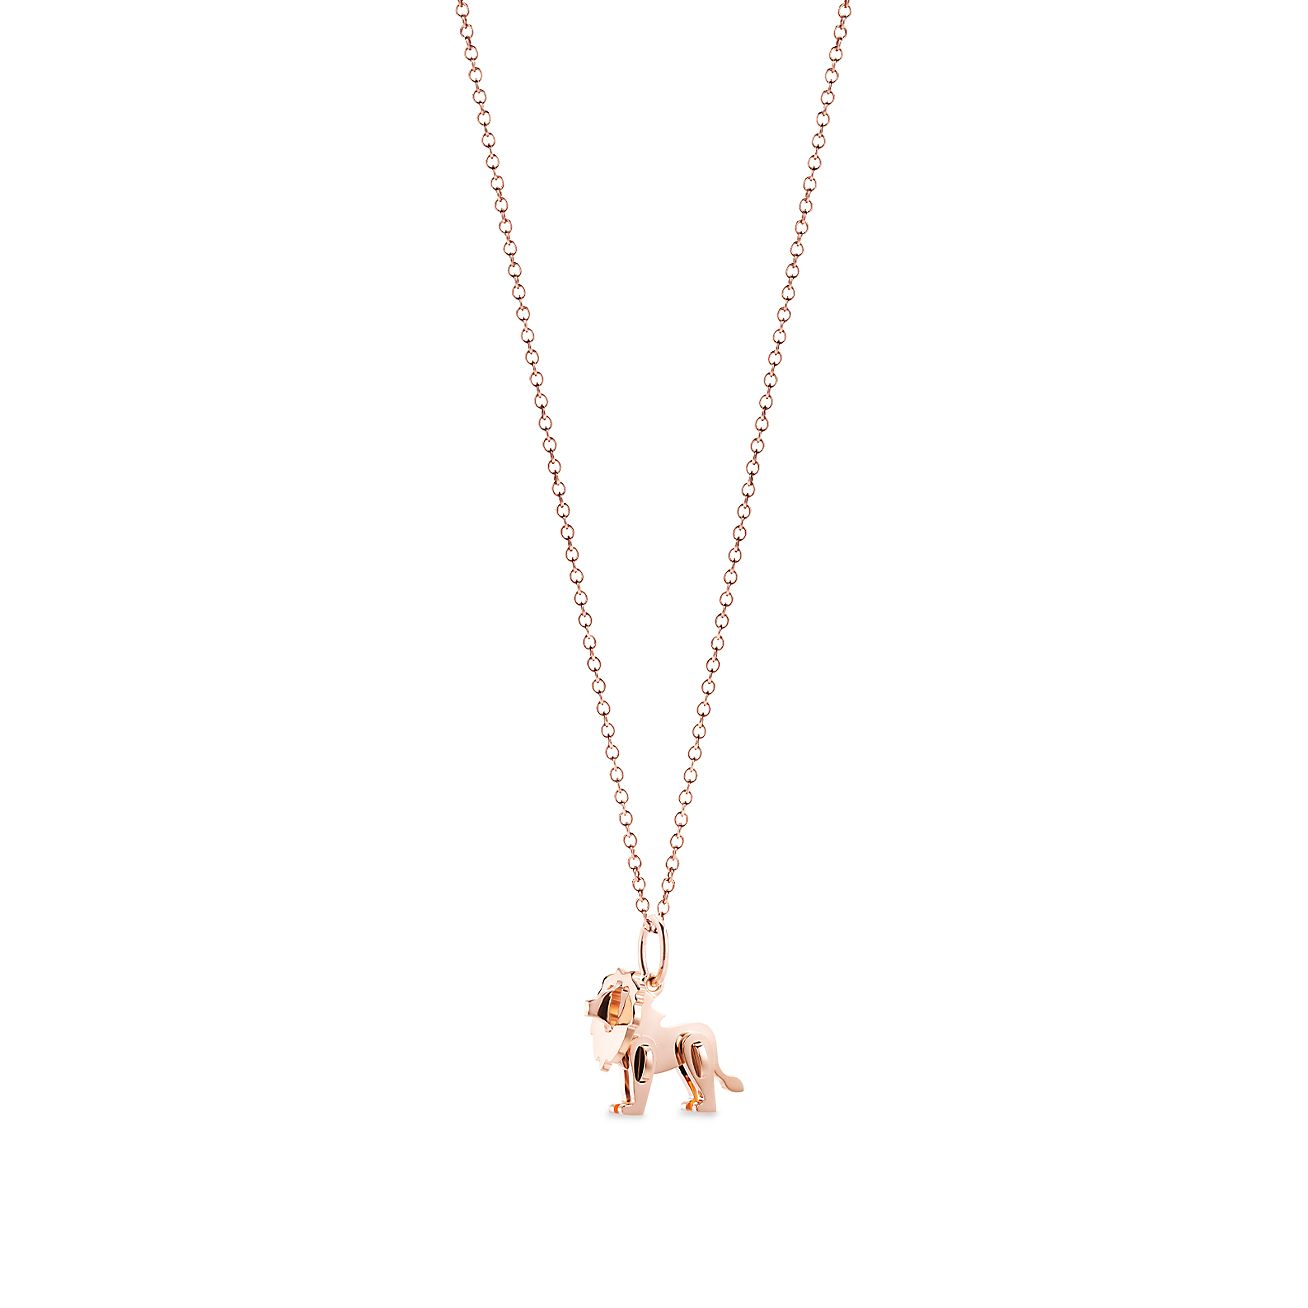 c6c7d6dfea1f Tiffany Save the Wild lion charm in 18k rose gold